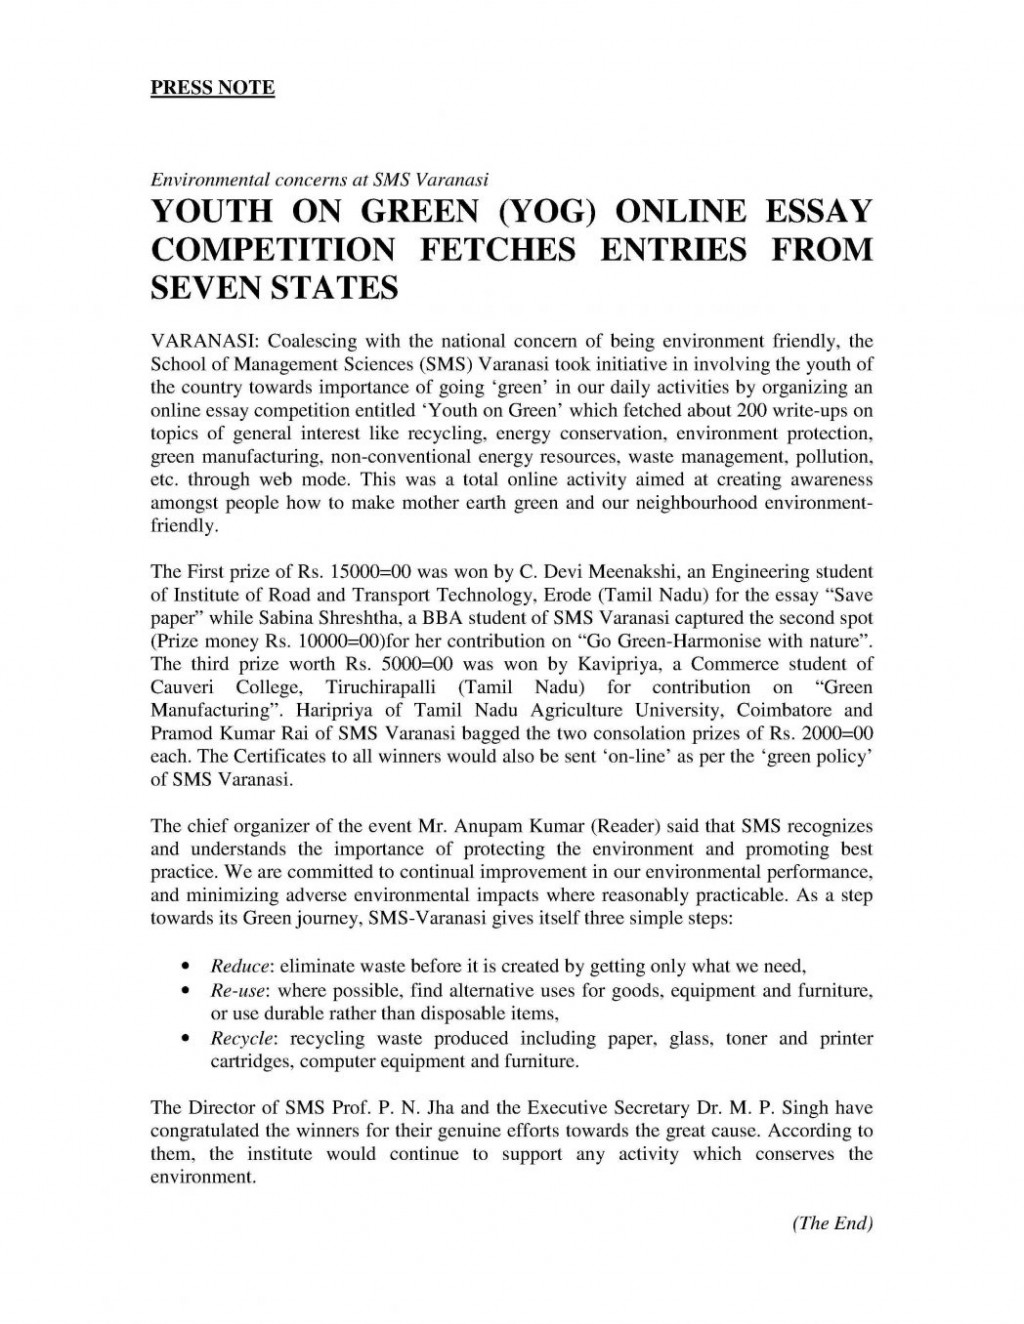 004 Healthy Eating Essay Example Importance Of Good Health Essays Online Yog Press Re Safe Writing Service Impressive In French Pt3 Spm Large